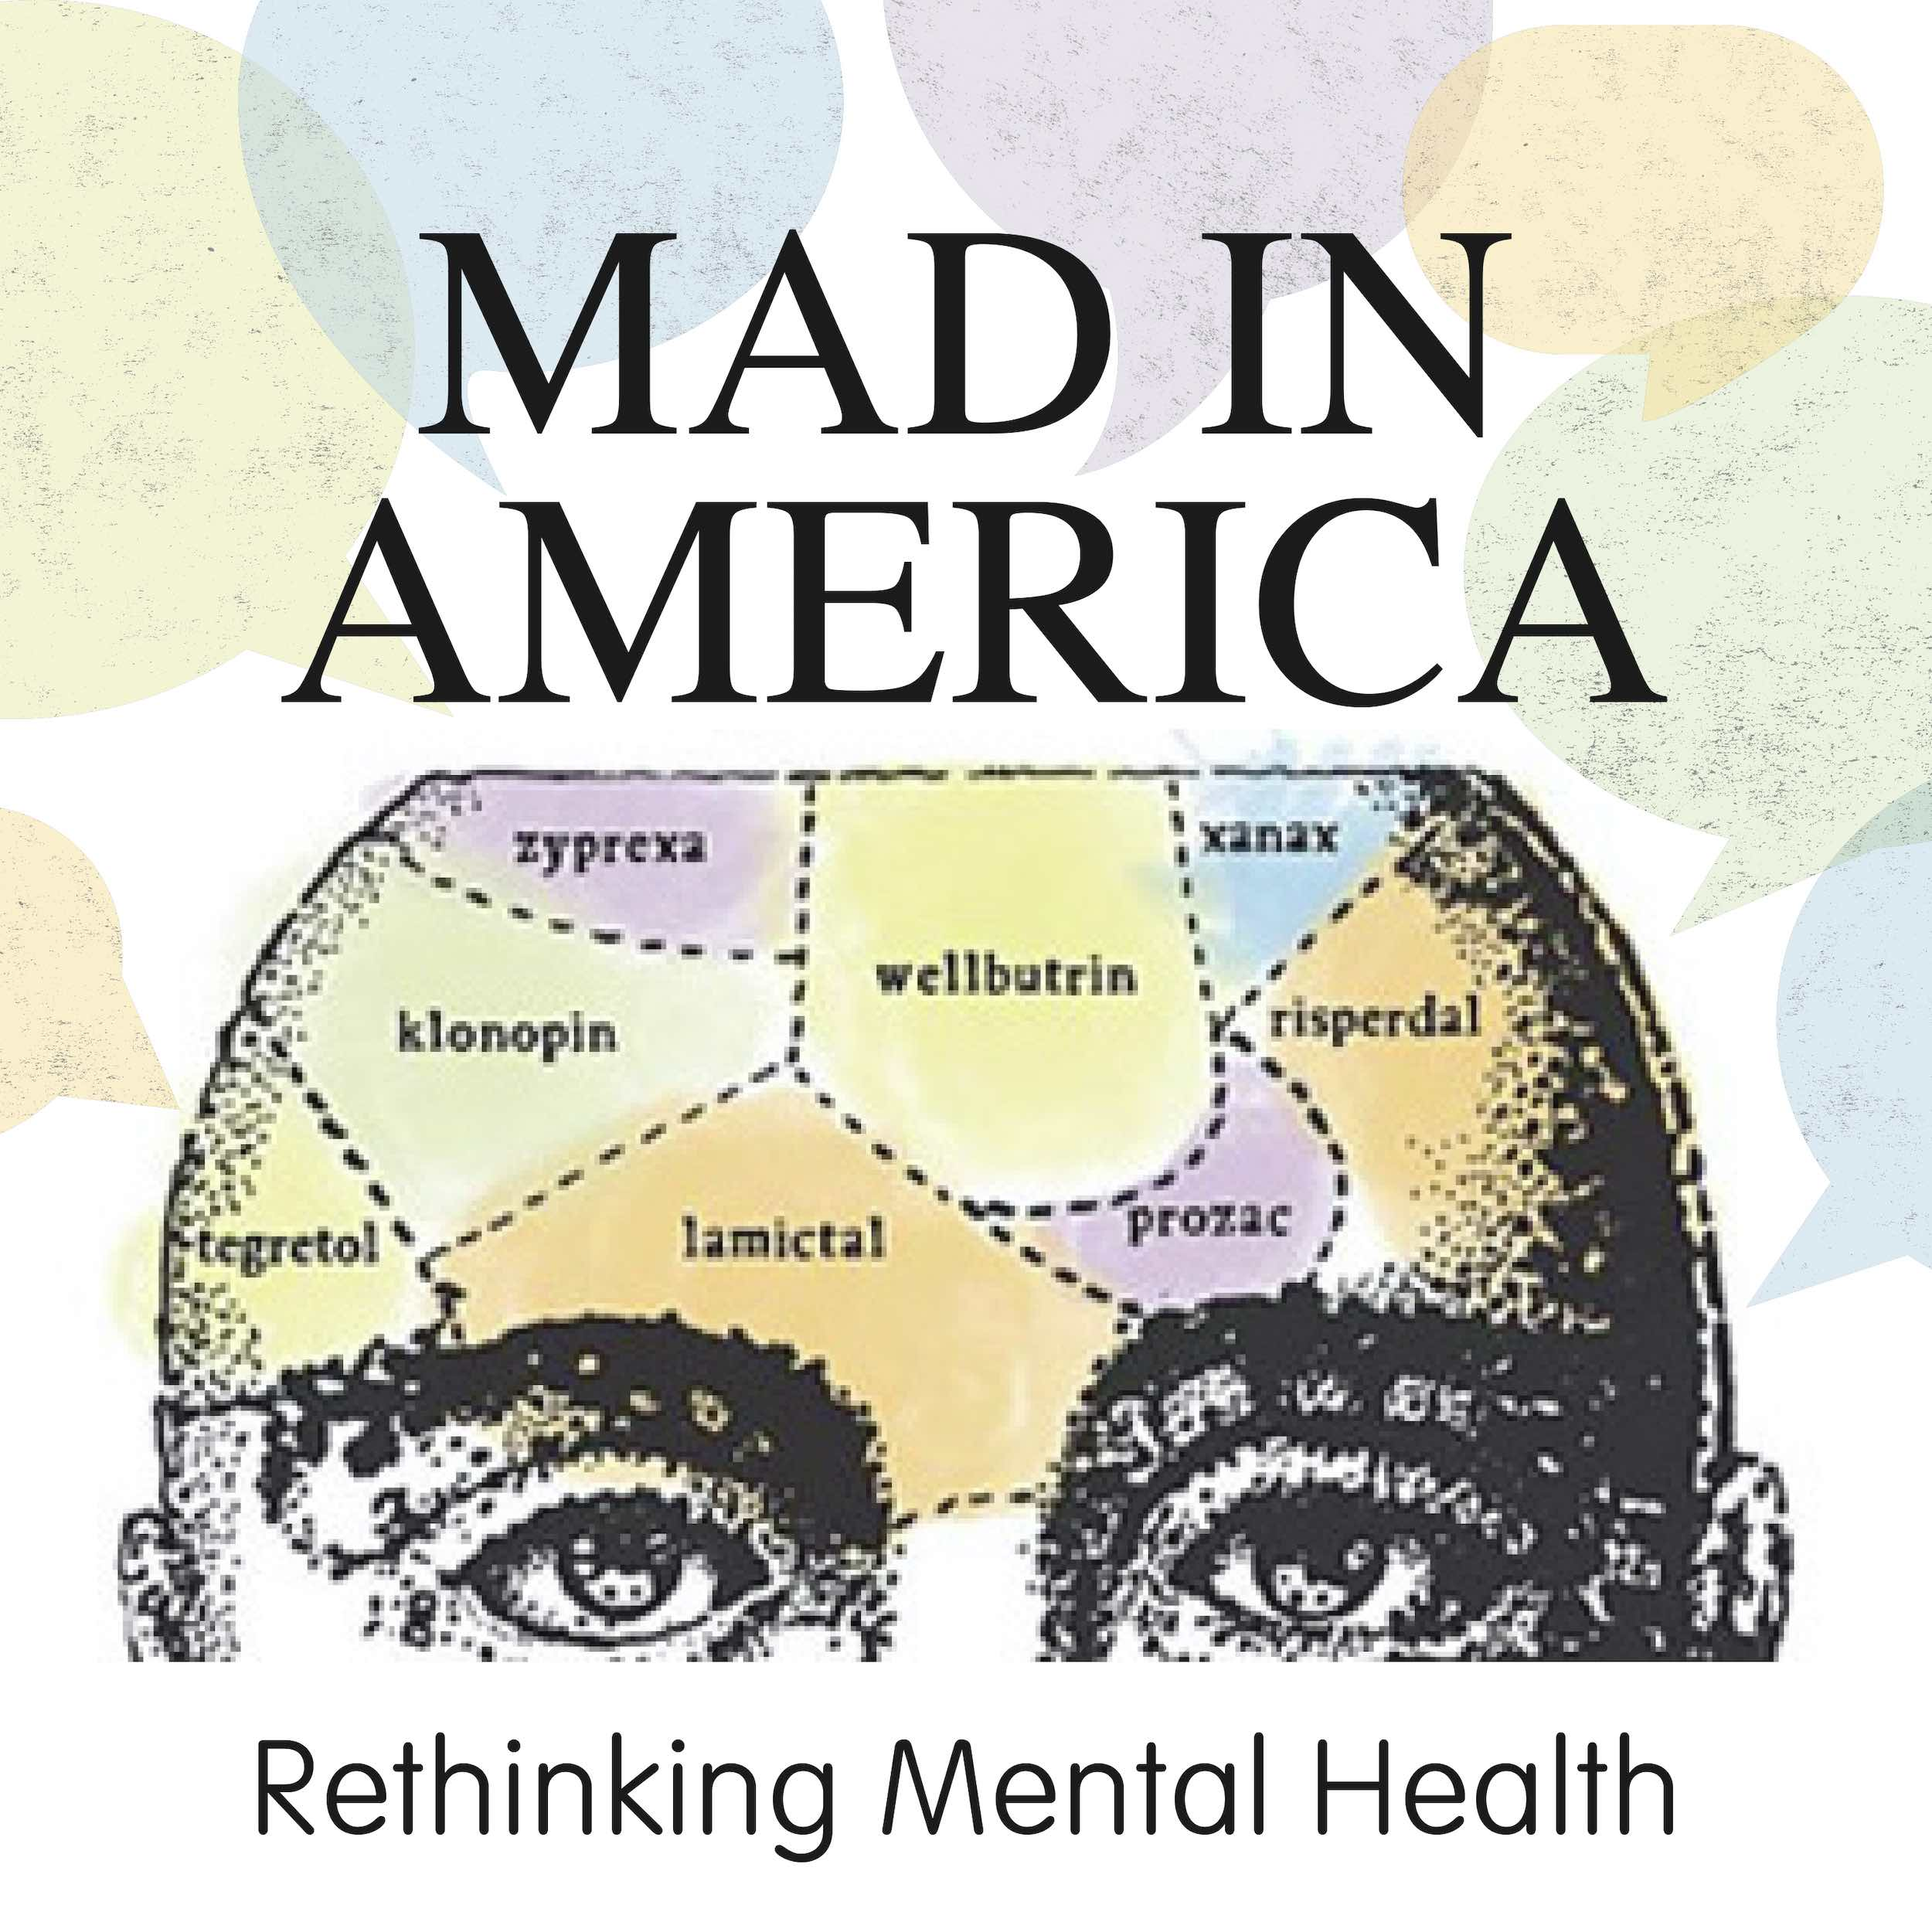 Mad in America: Rethinking Mental Health - Mary Watkins - Opening Doors in the Borderlands